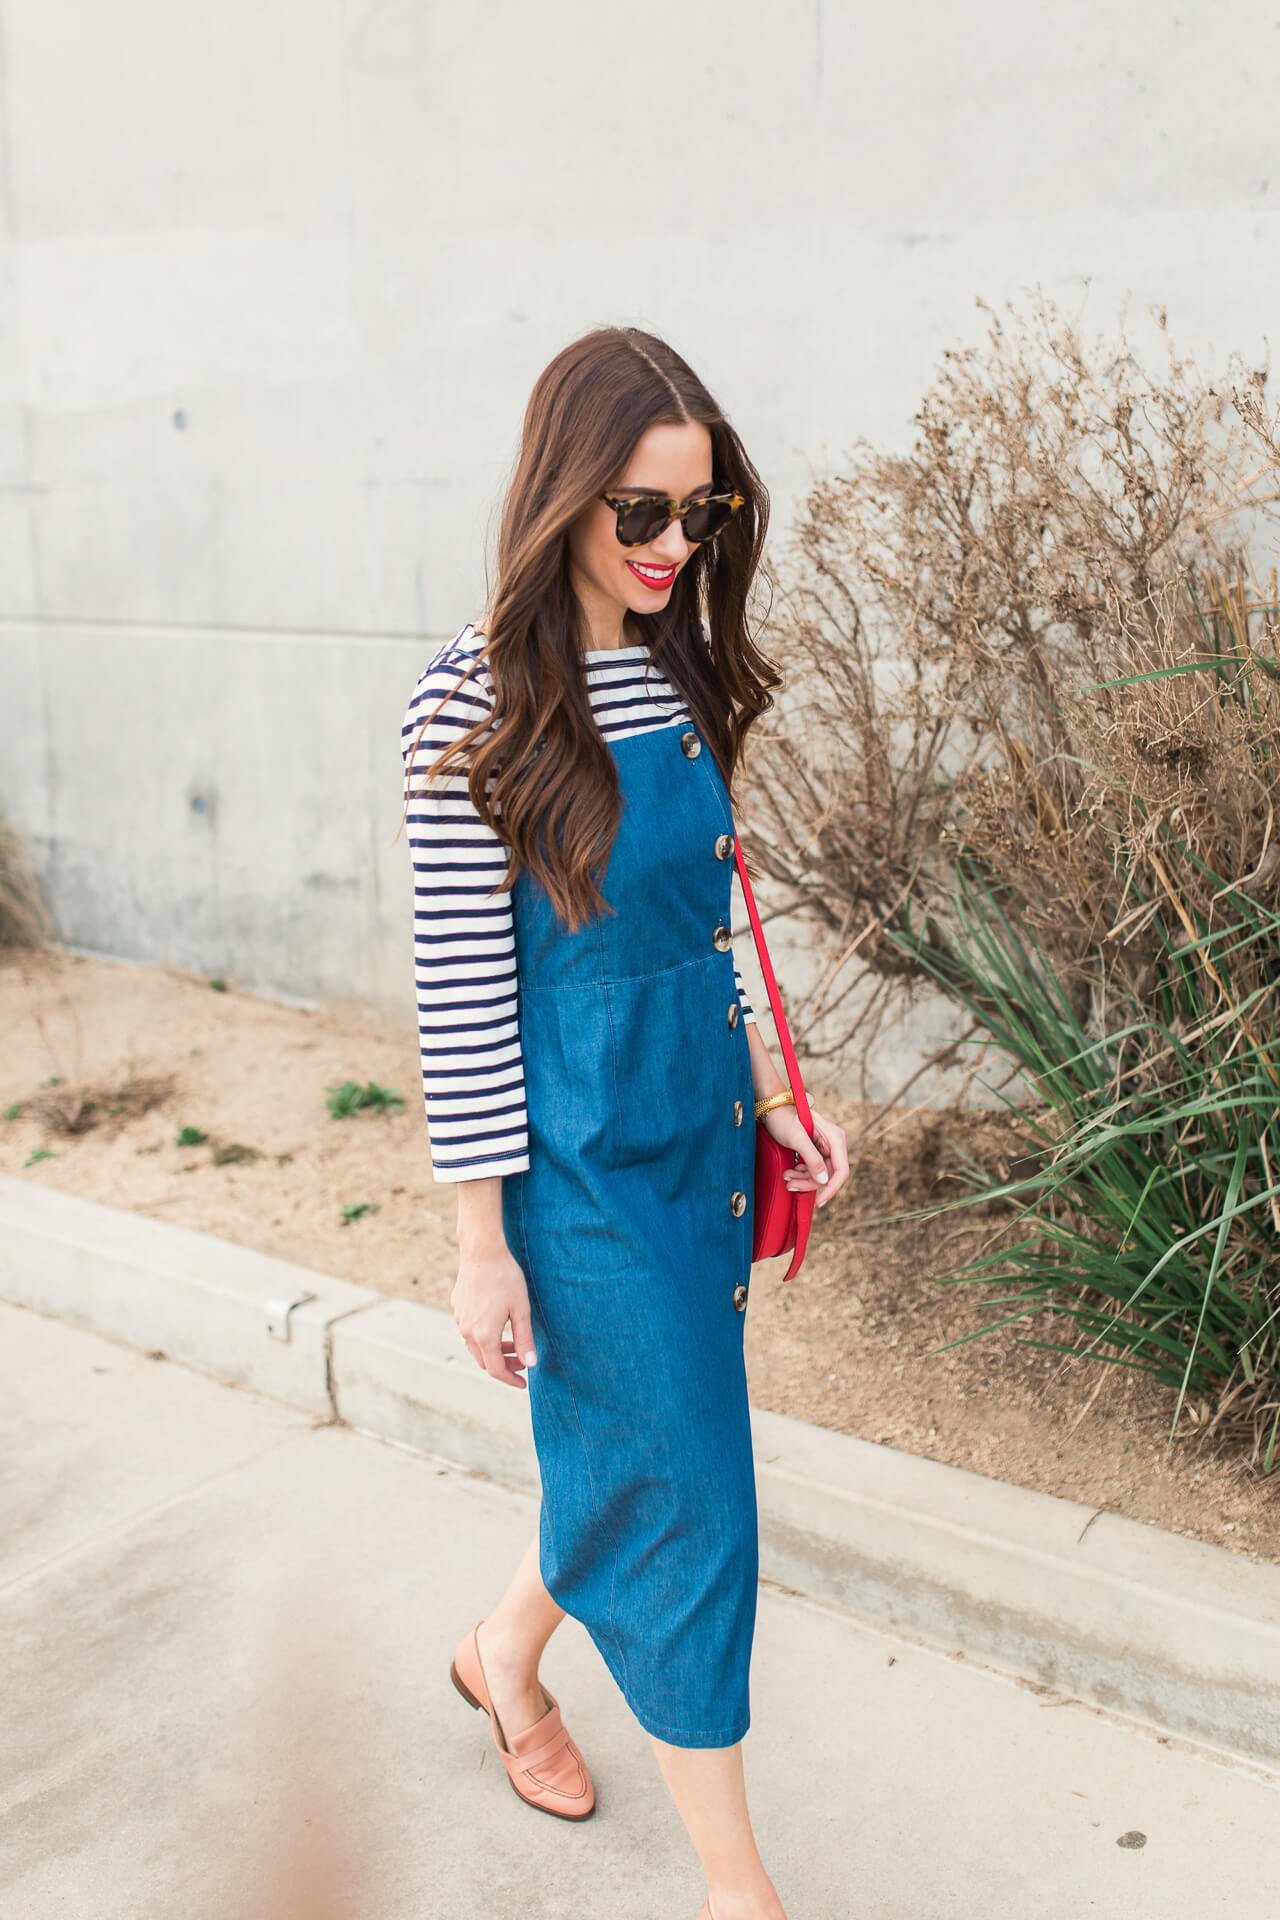 love this cute denim dress with the striped shirt and red bag